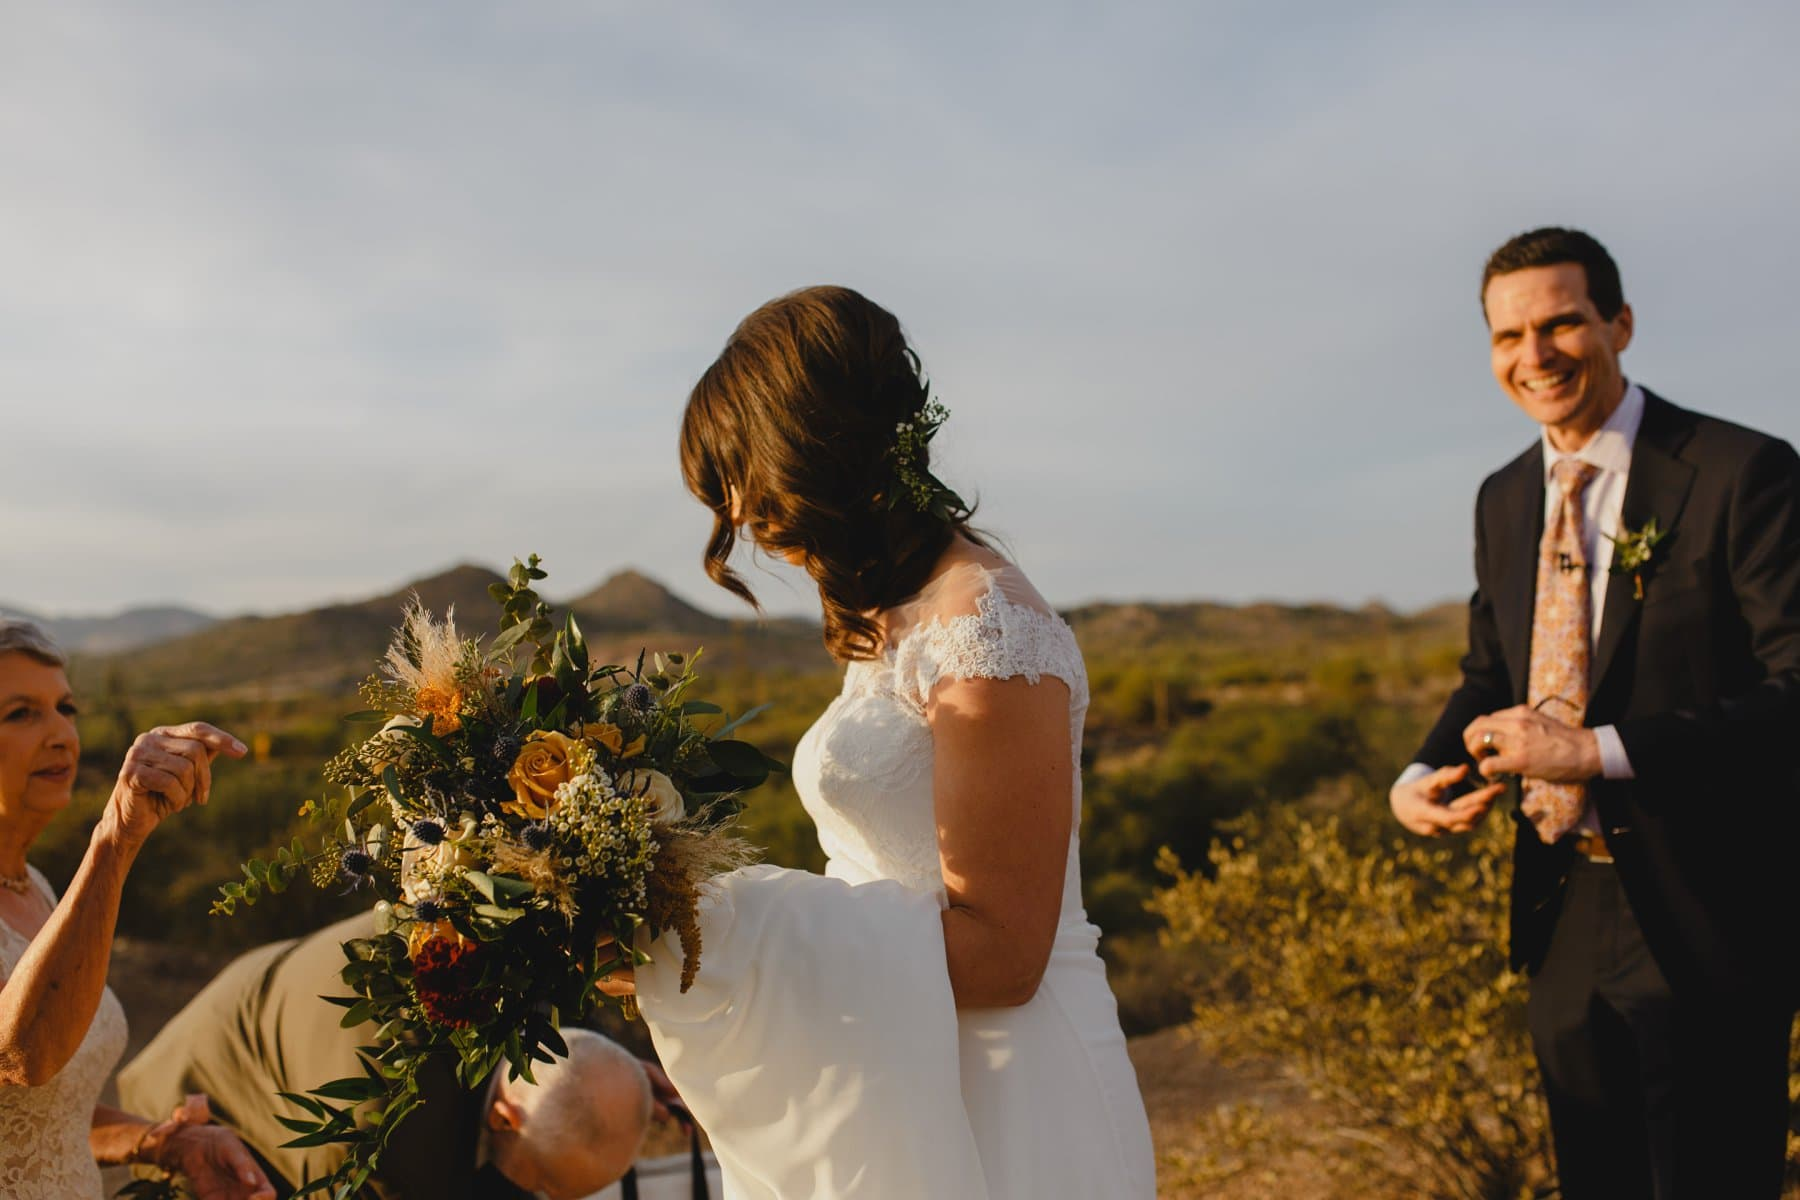 documentary candid elopement photos Arizona Superstition mountains at sunset